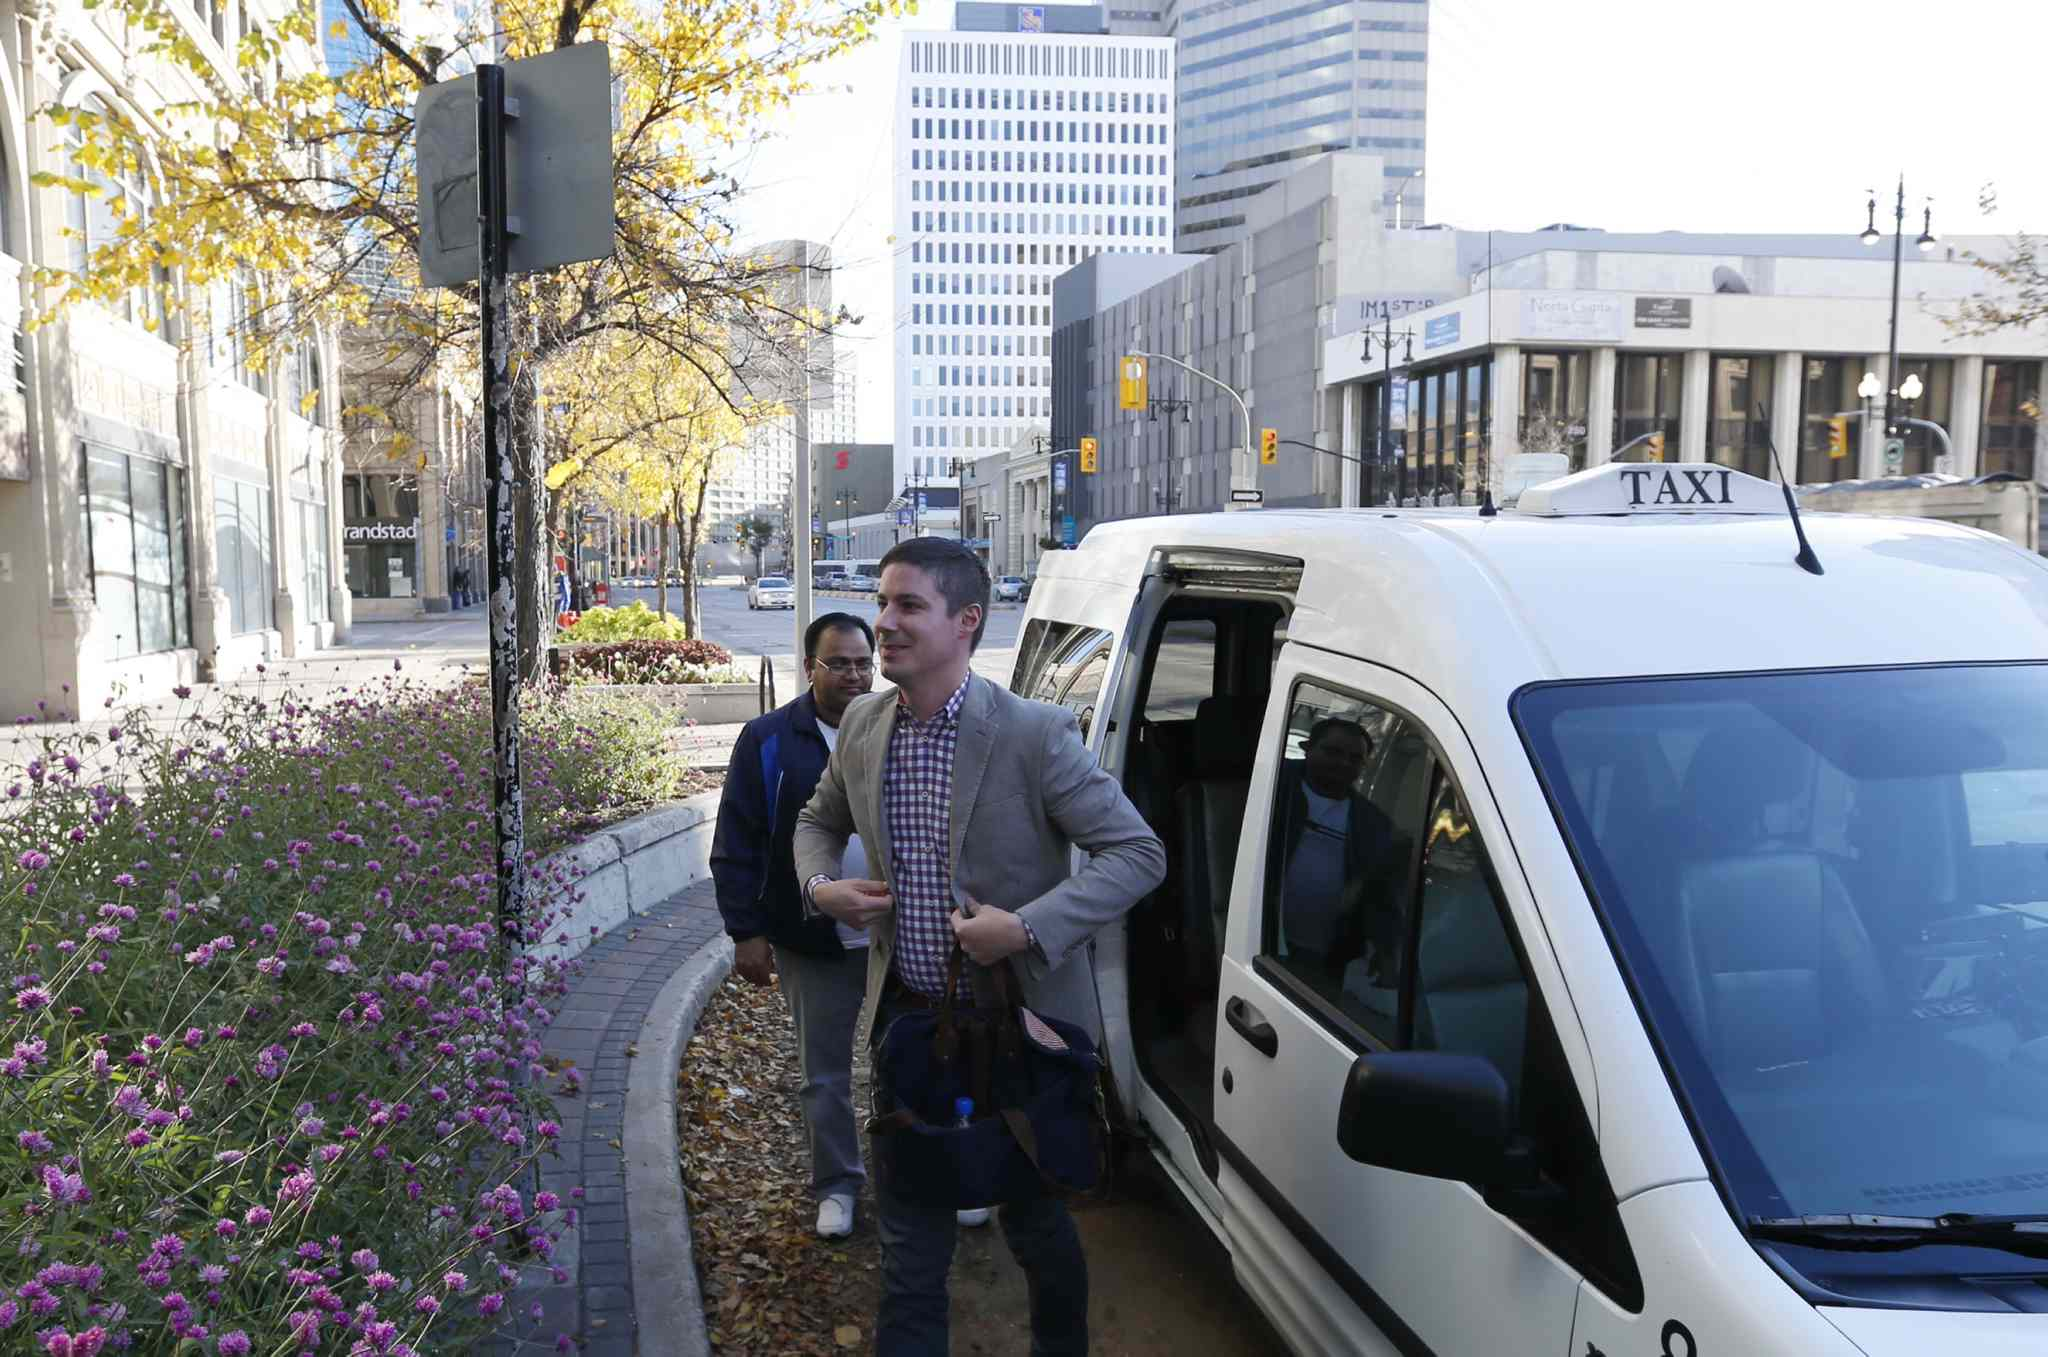 Uber Canada's Public Policy Manager Chris Schafer got a ride from taxi driver Nadeem Arain from the airport to the Winnipeg Chamber of Commerce office.